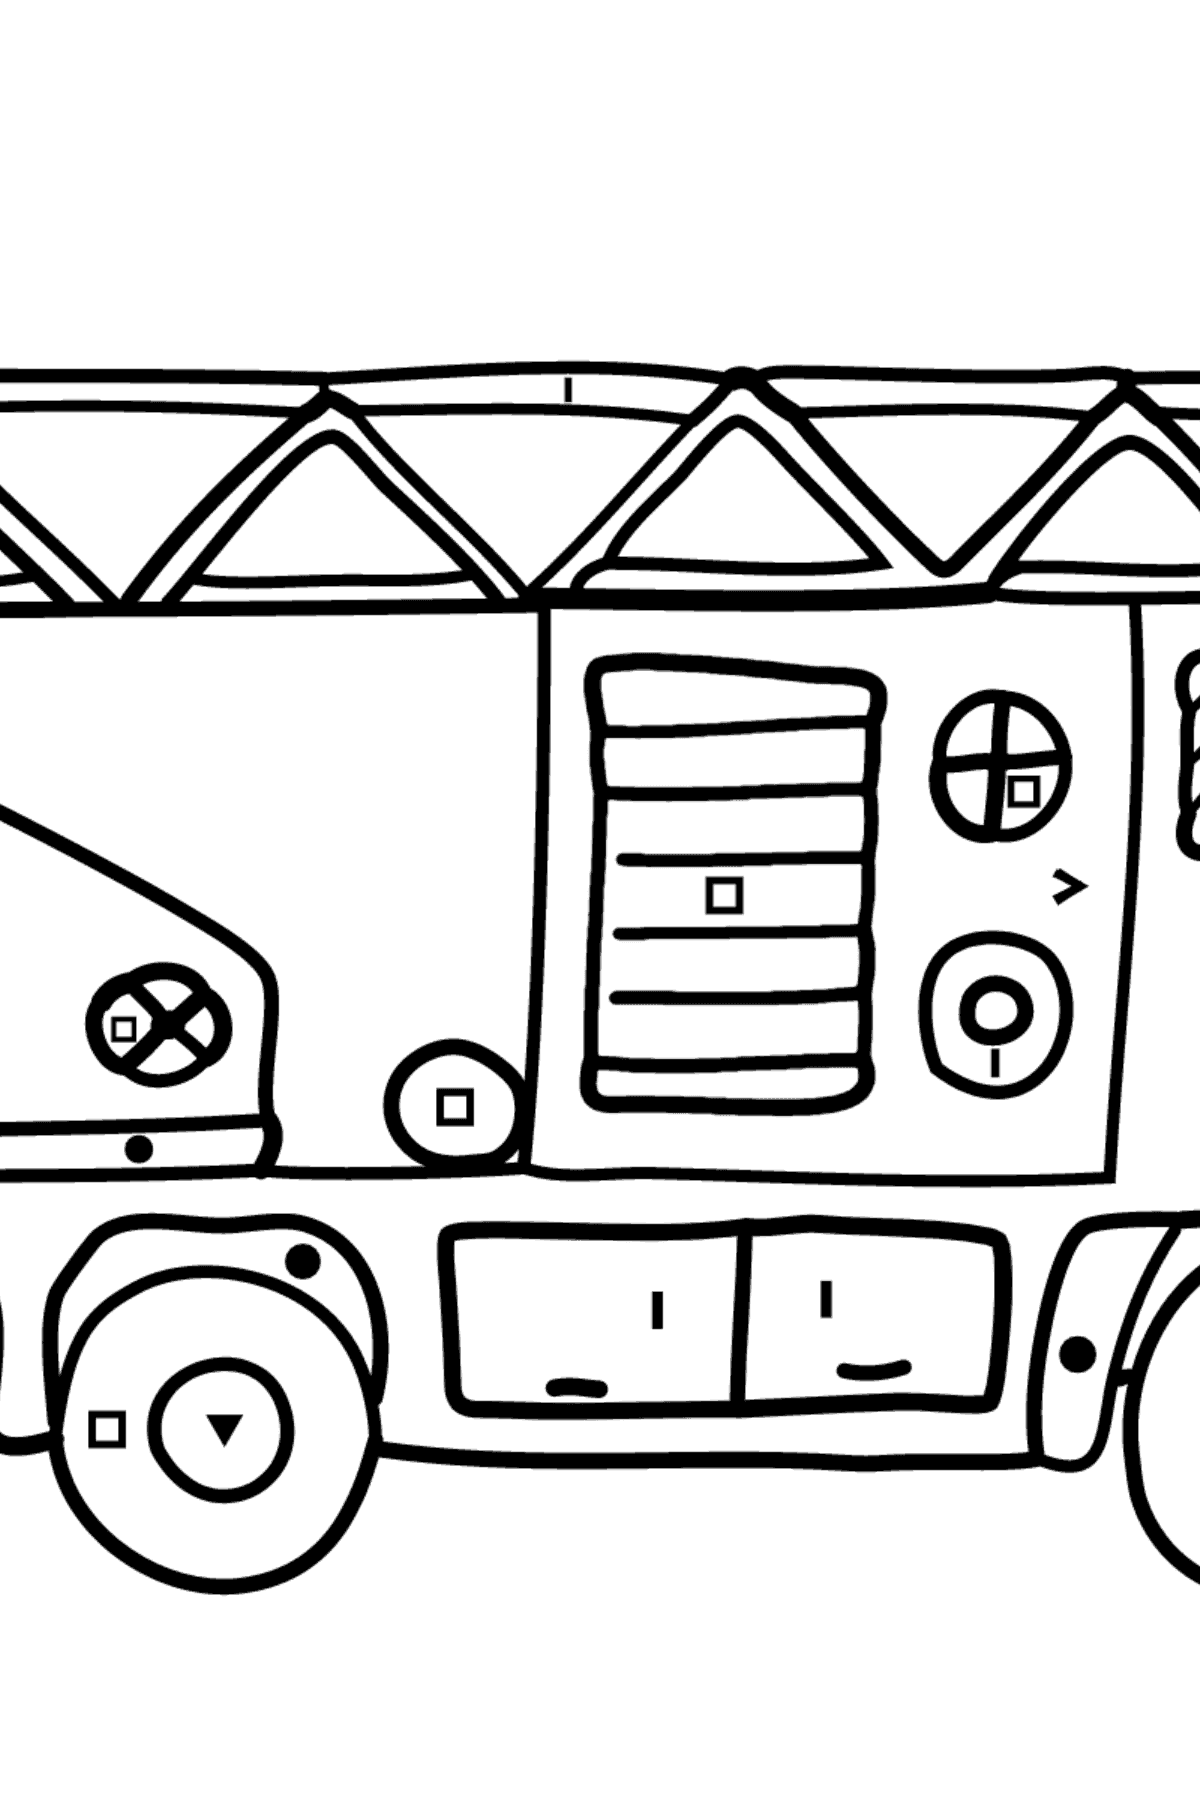 Coloring Page - A Fire Truck for Children  - Color by Special Symbols